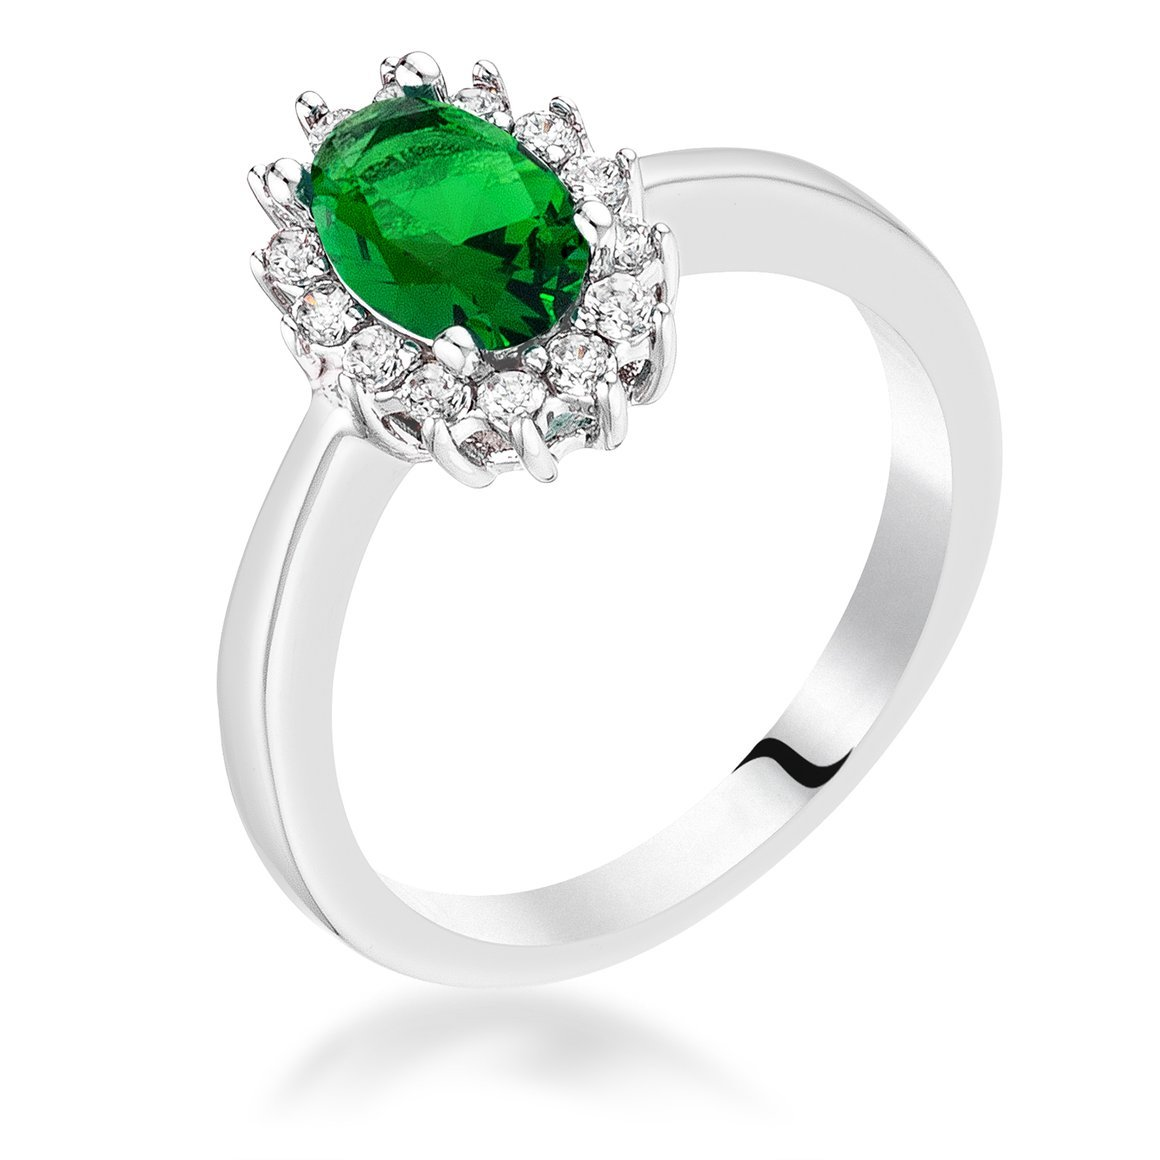 Emerald Green Cubic Zirconia Petite Oval Ring Sizes 5-10 NEW